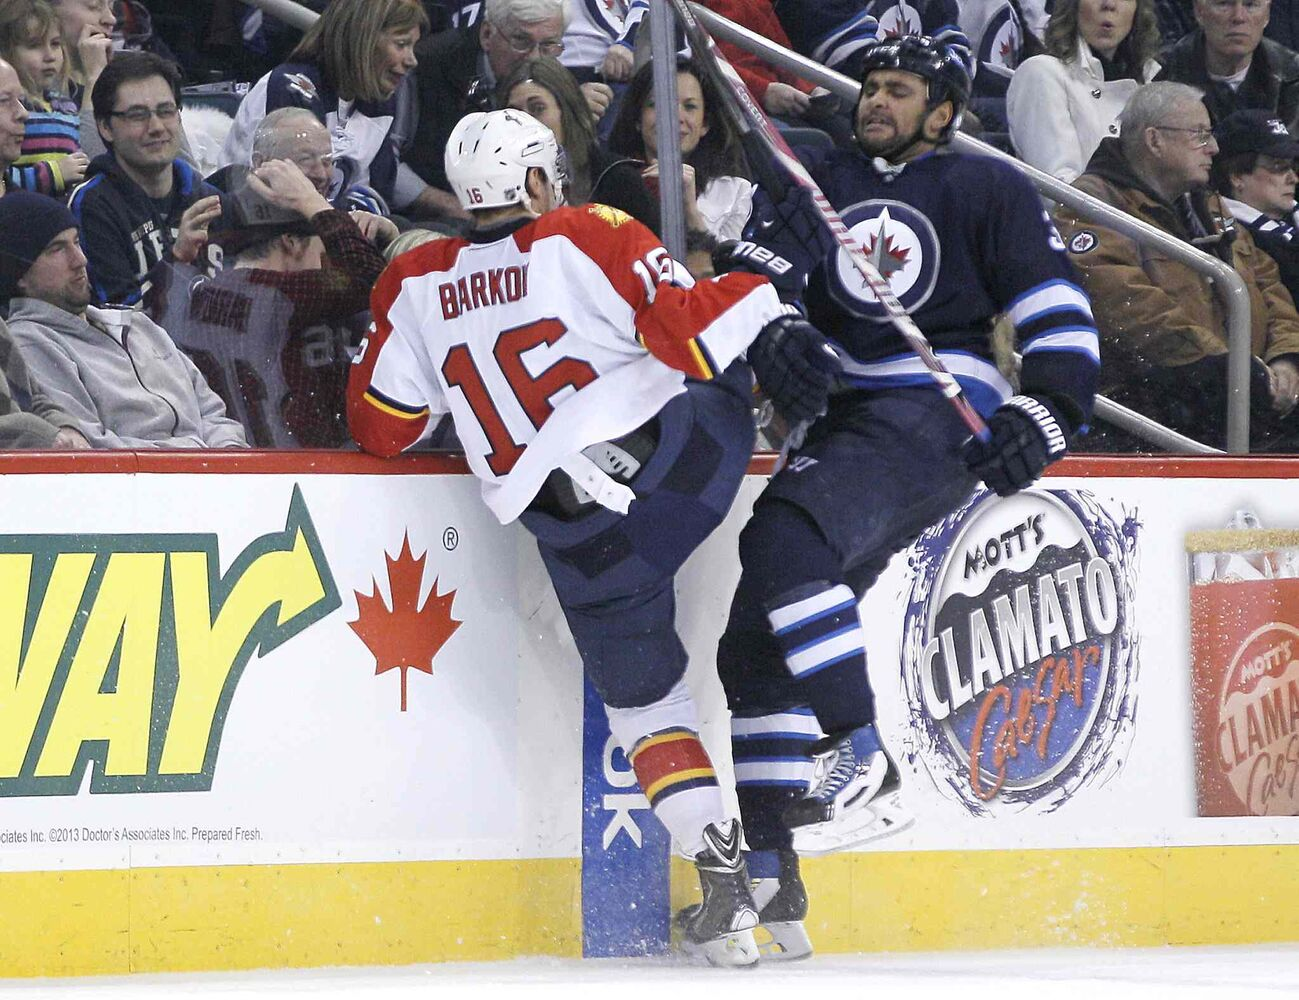 Winnipeg Jets' Dustin Byfuglien (33) and Florida Panthers' Aleksander Barkov (16) collide during the second period. (John Woods / The Canadian Press)